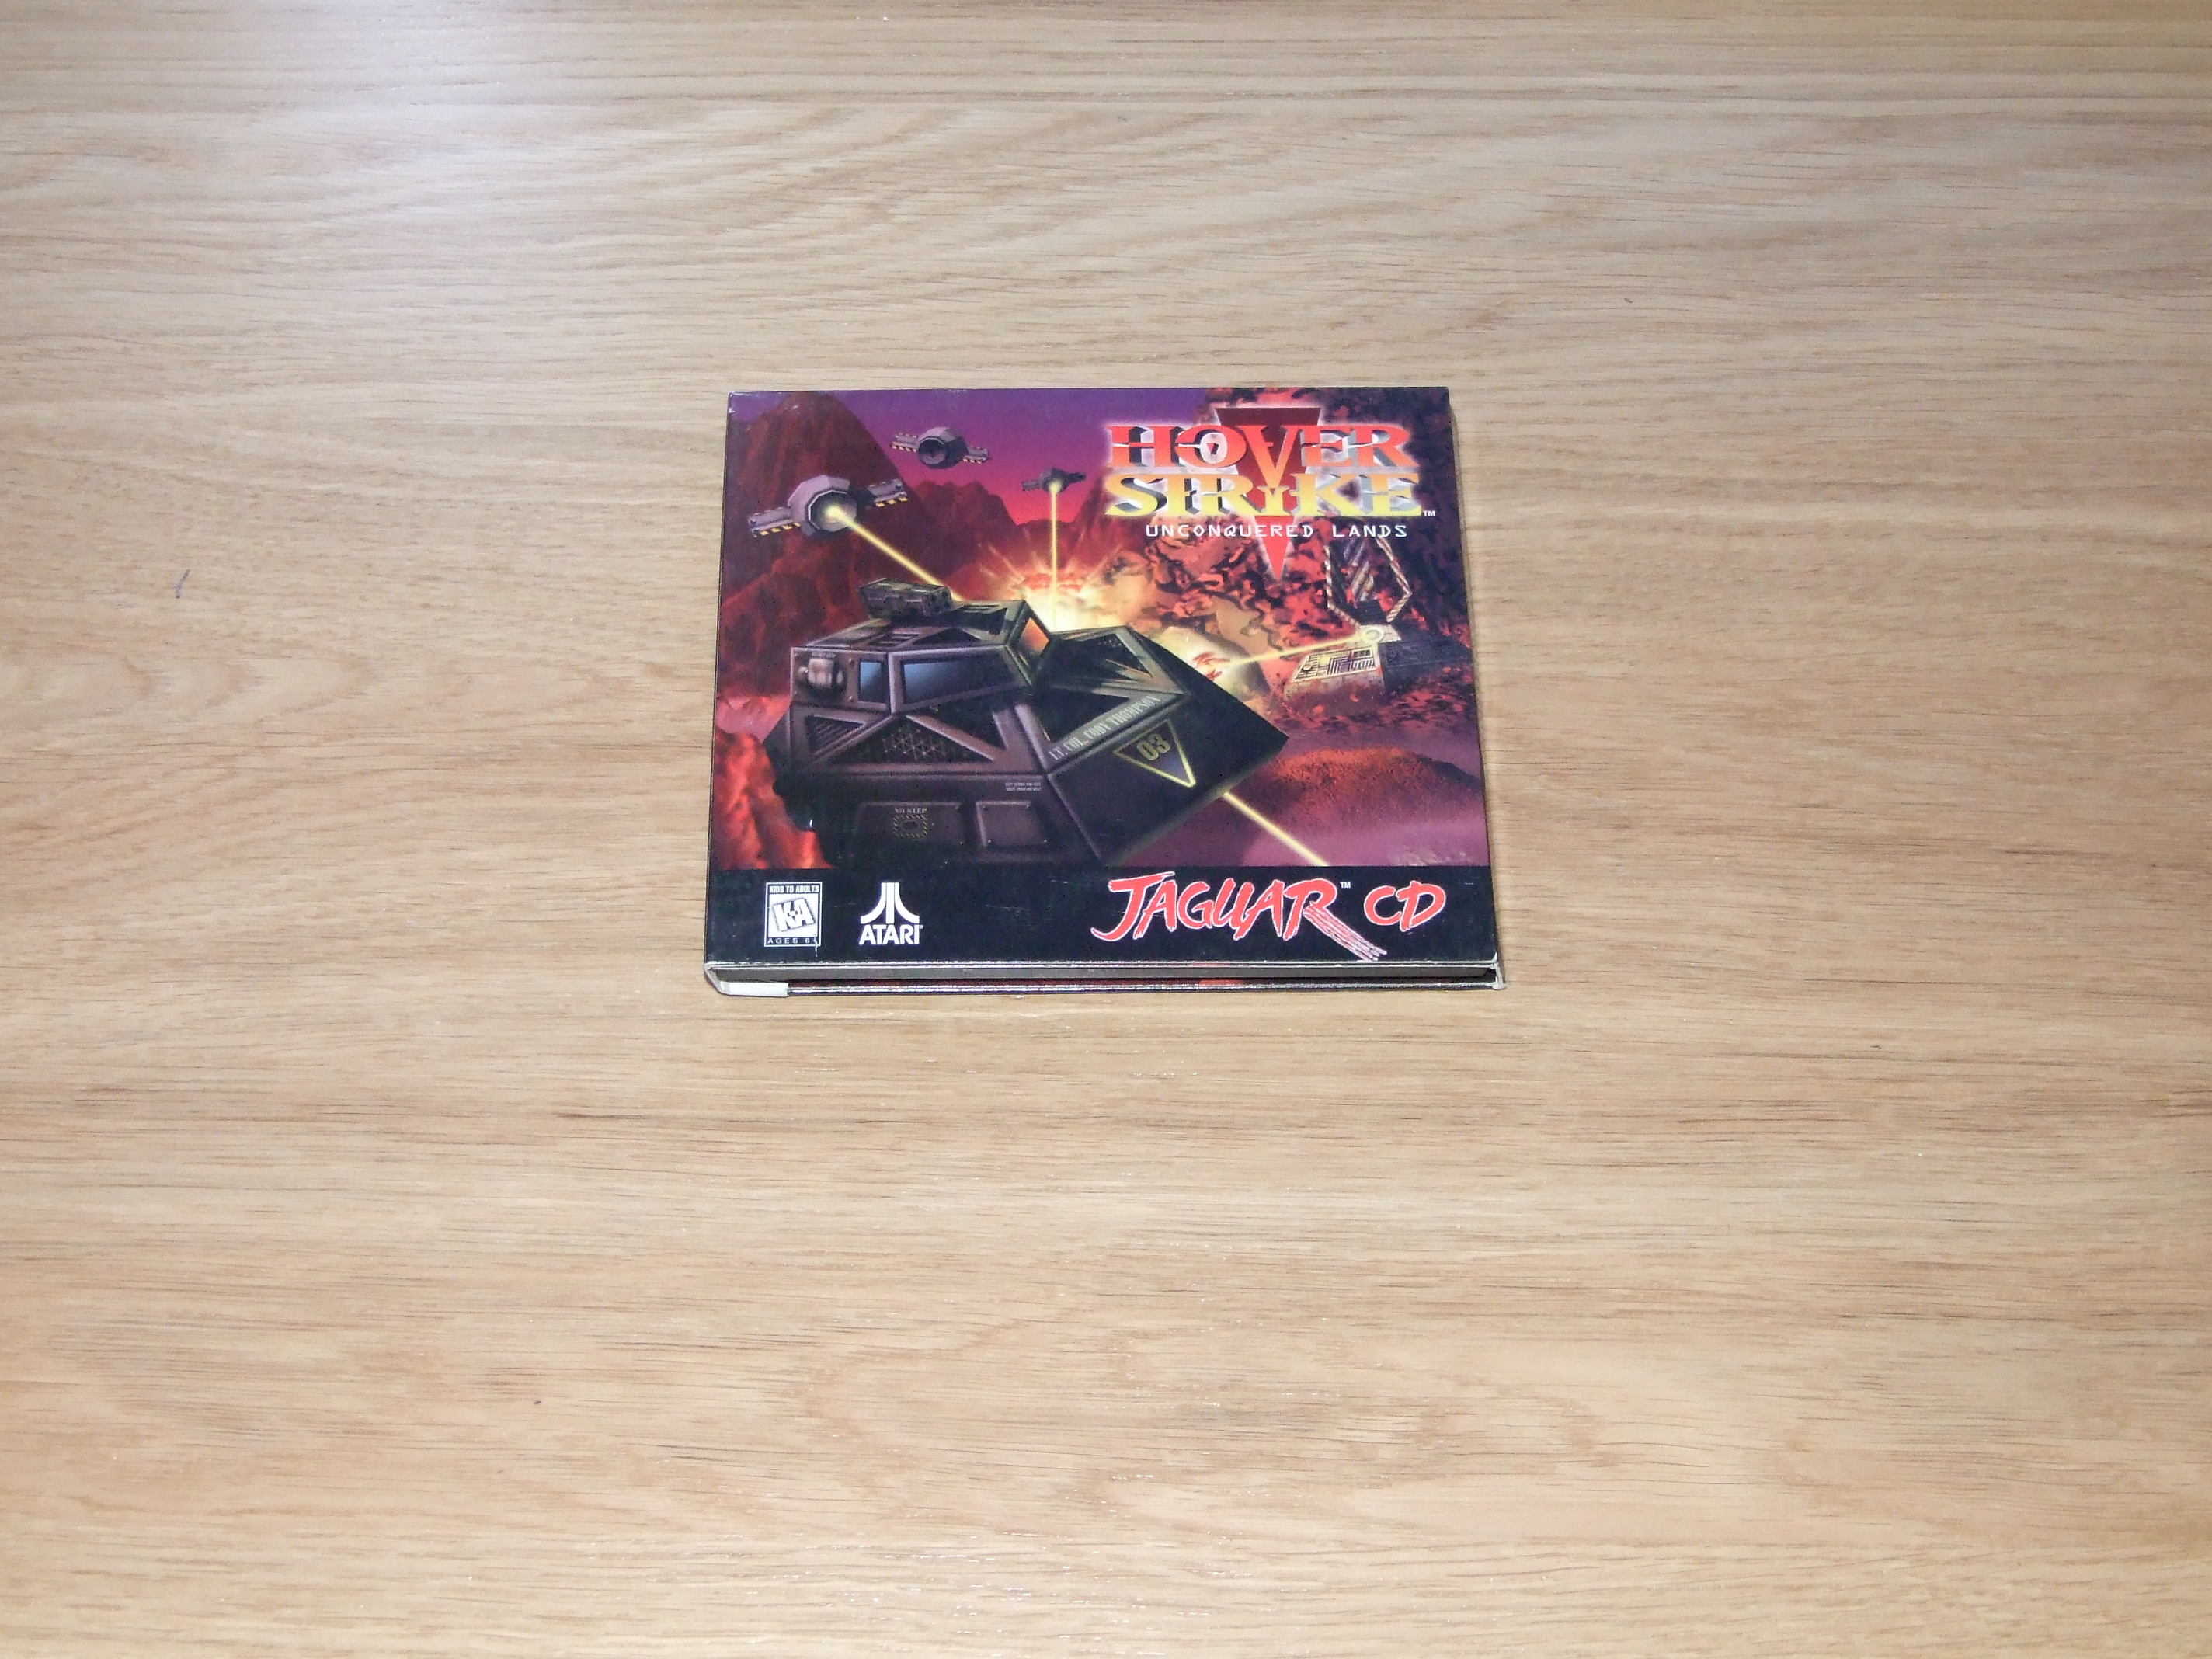 What's inside the box for Hover Strike: Unconquered Lands for the Atari Jaguar CD... Yep, it's just a sleeve!